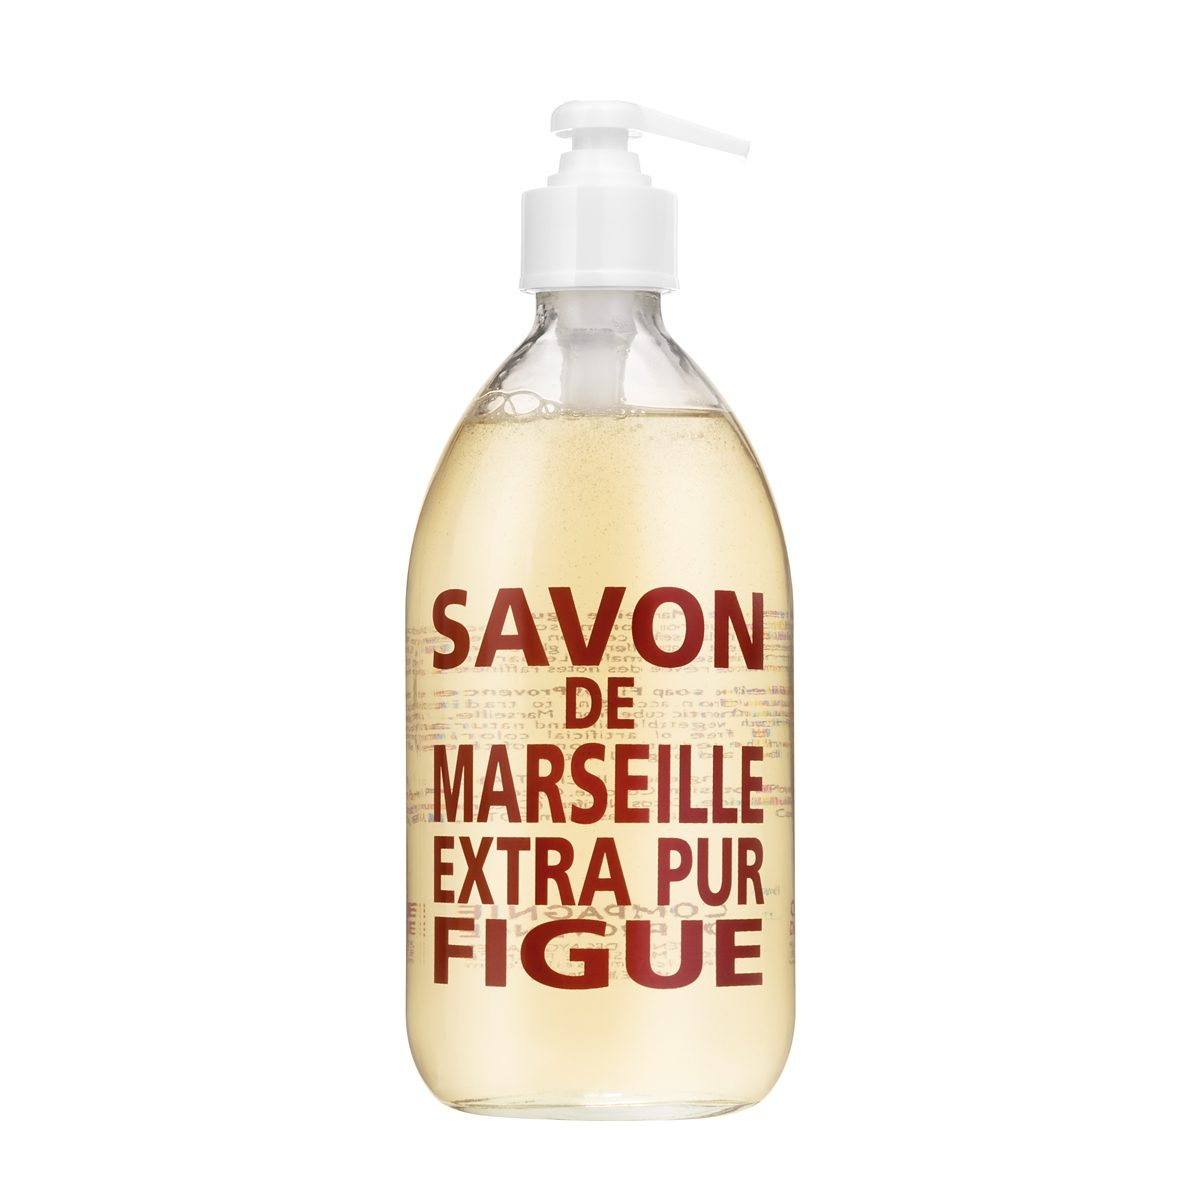 COMPAGNIE DE PROVENCE Compagnie de Provence Flüssigseife Feige 500ml EXTRA PUR